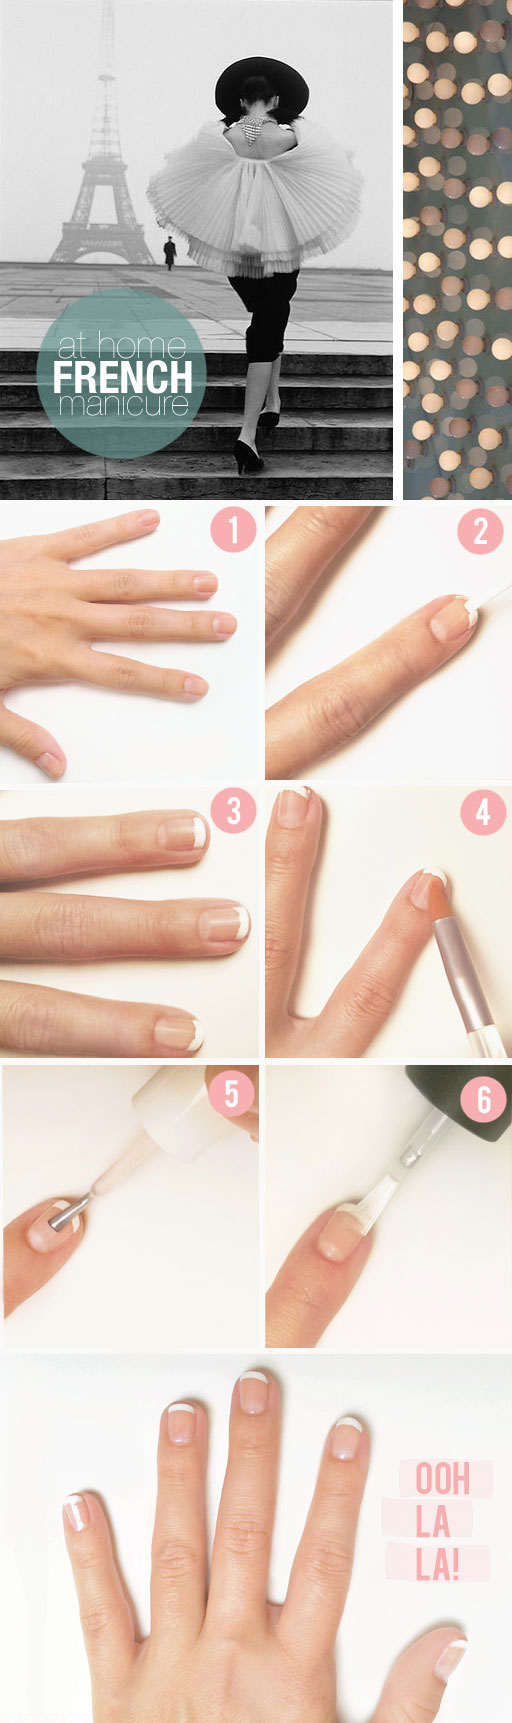 French Manicure Tutorial ~ TBDlaurenfrench12